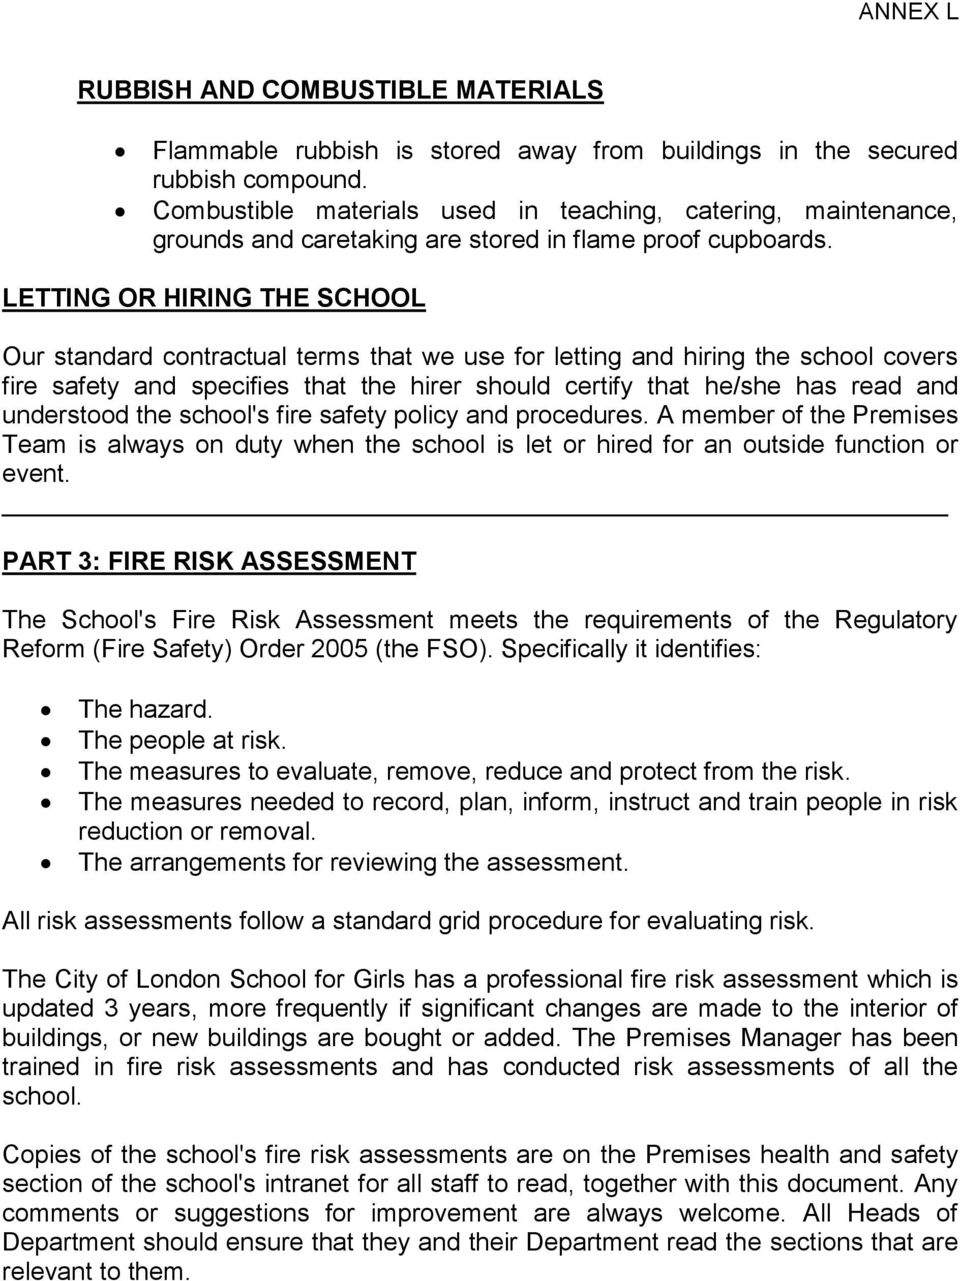 LETTING OR HIRING THE SCHOOL Our standard contractual terms that we use for letting and hiring the school covers fire safety and specifies that the hirer should certify that he/she has read and